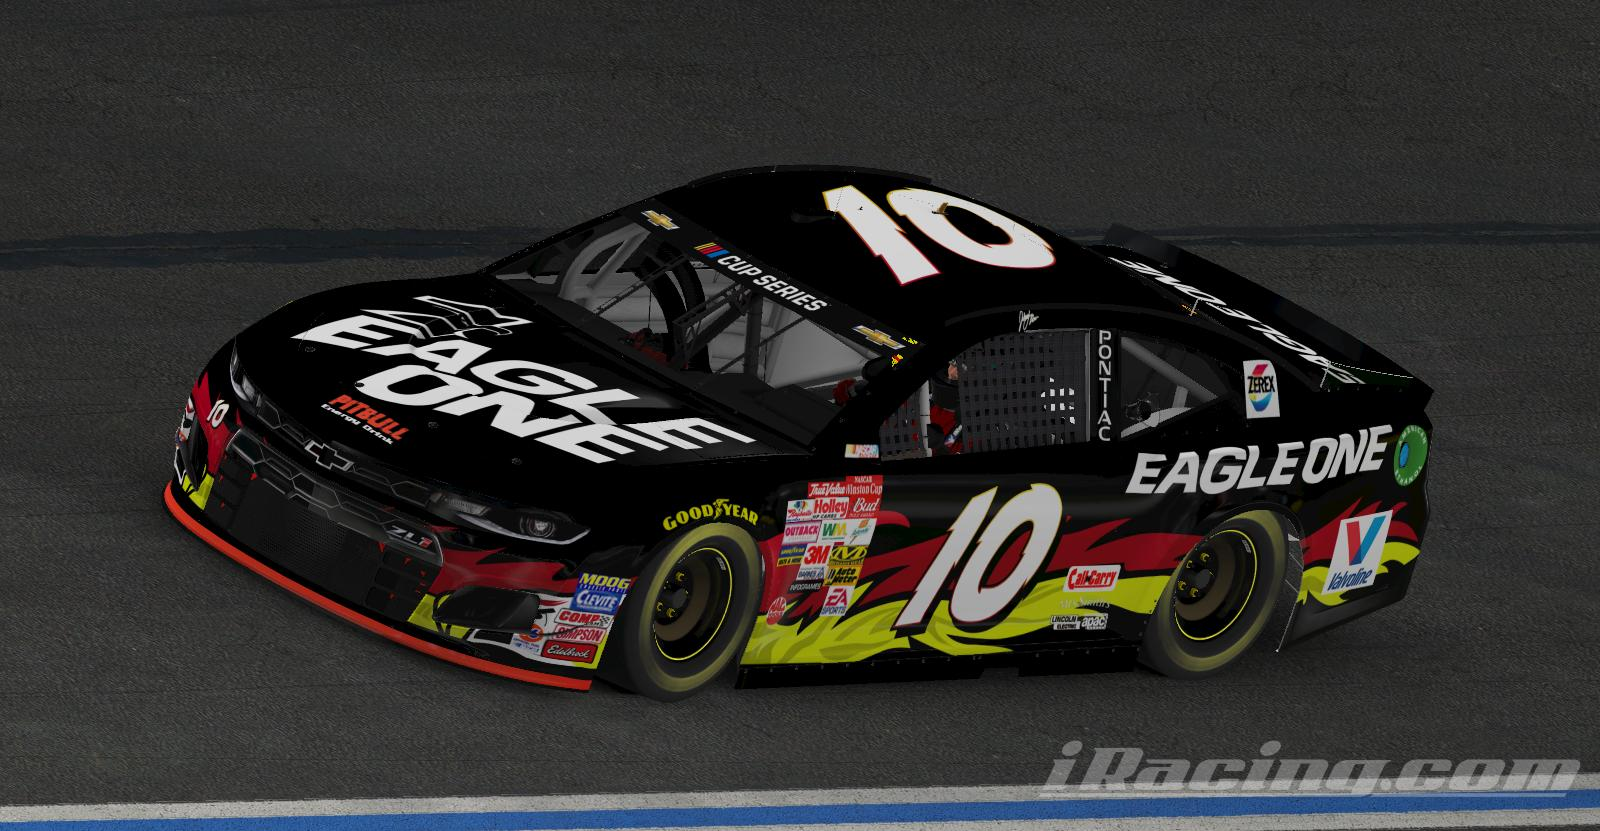 Preview of 2002 Johnny Benson Eagle One Camaro (CUSTOM NUMBER) by Aly Osman